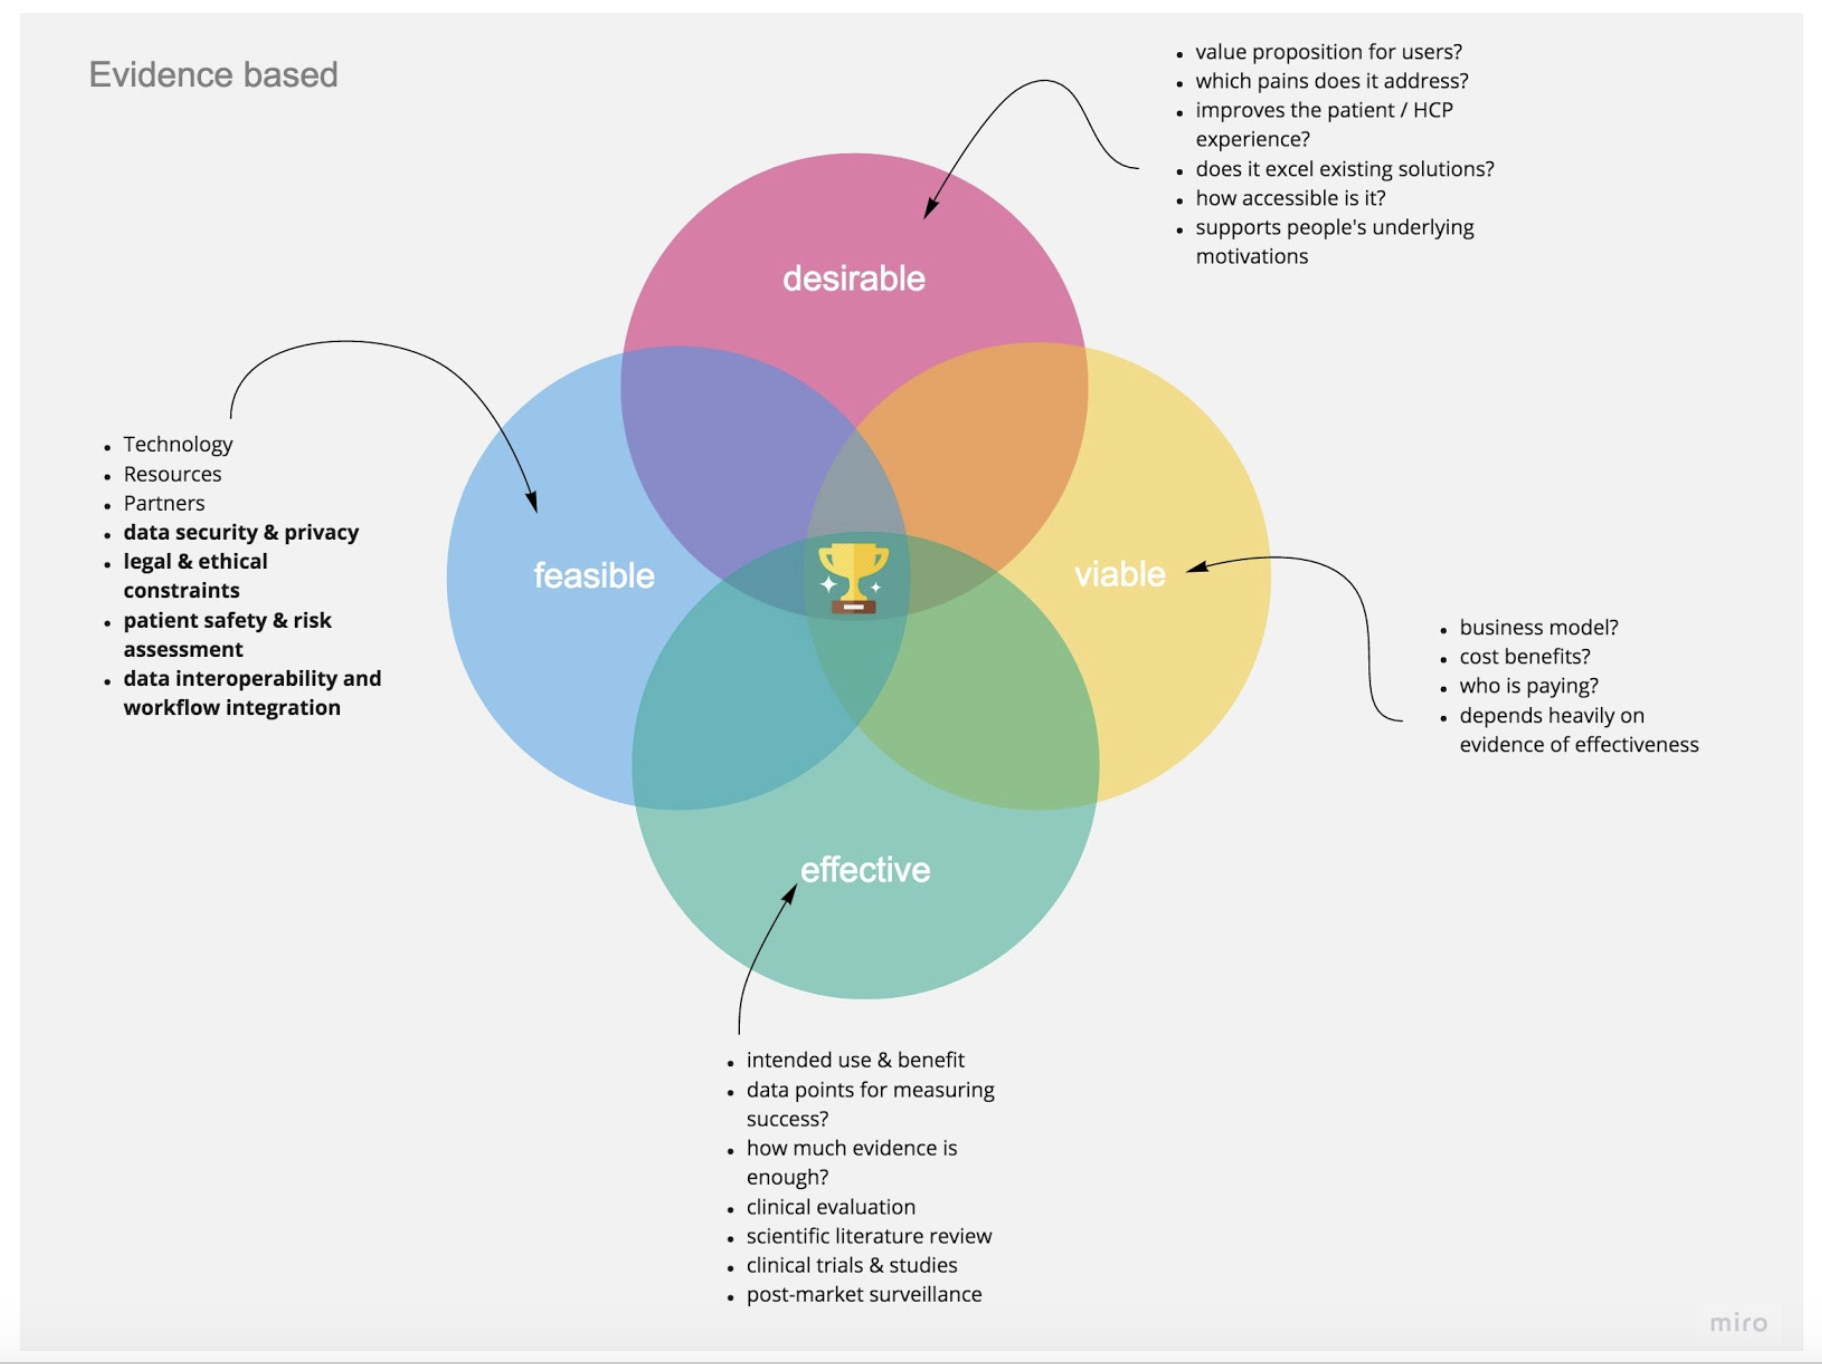 Venn diagram with the main components of viable, desirable, feasible, and effective with lists of questions/traits to discover to help provide the evidence for each component.